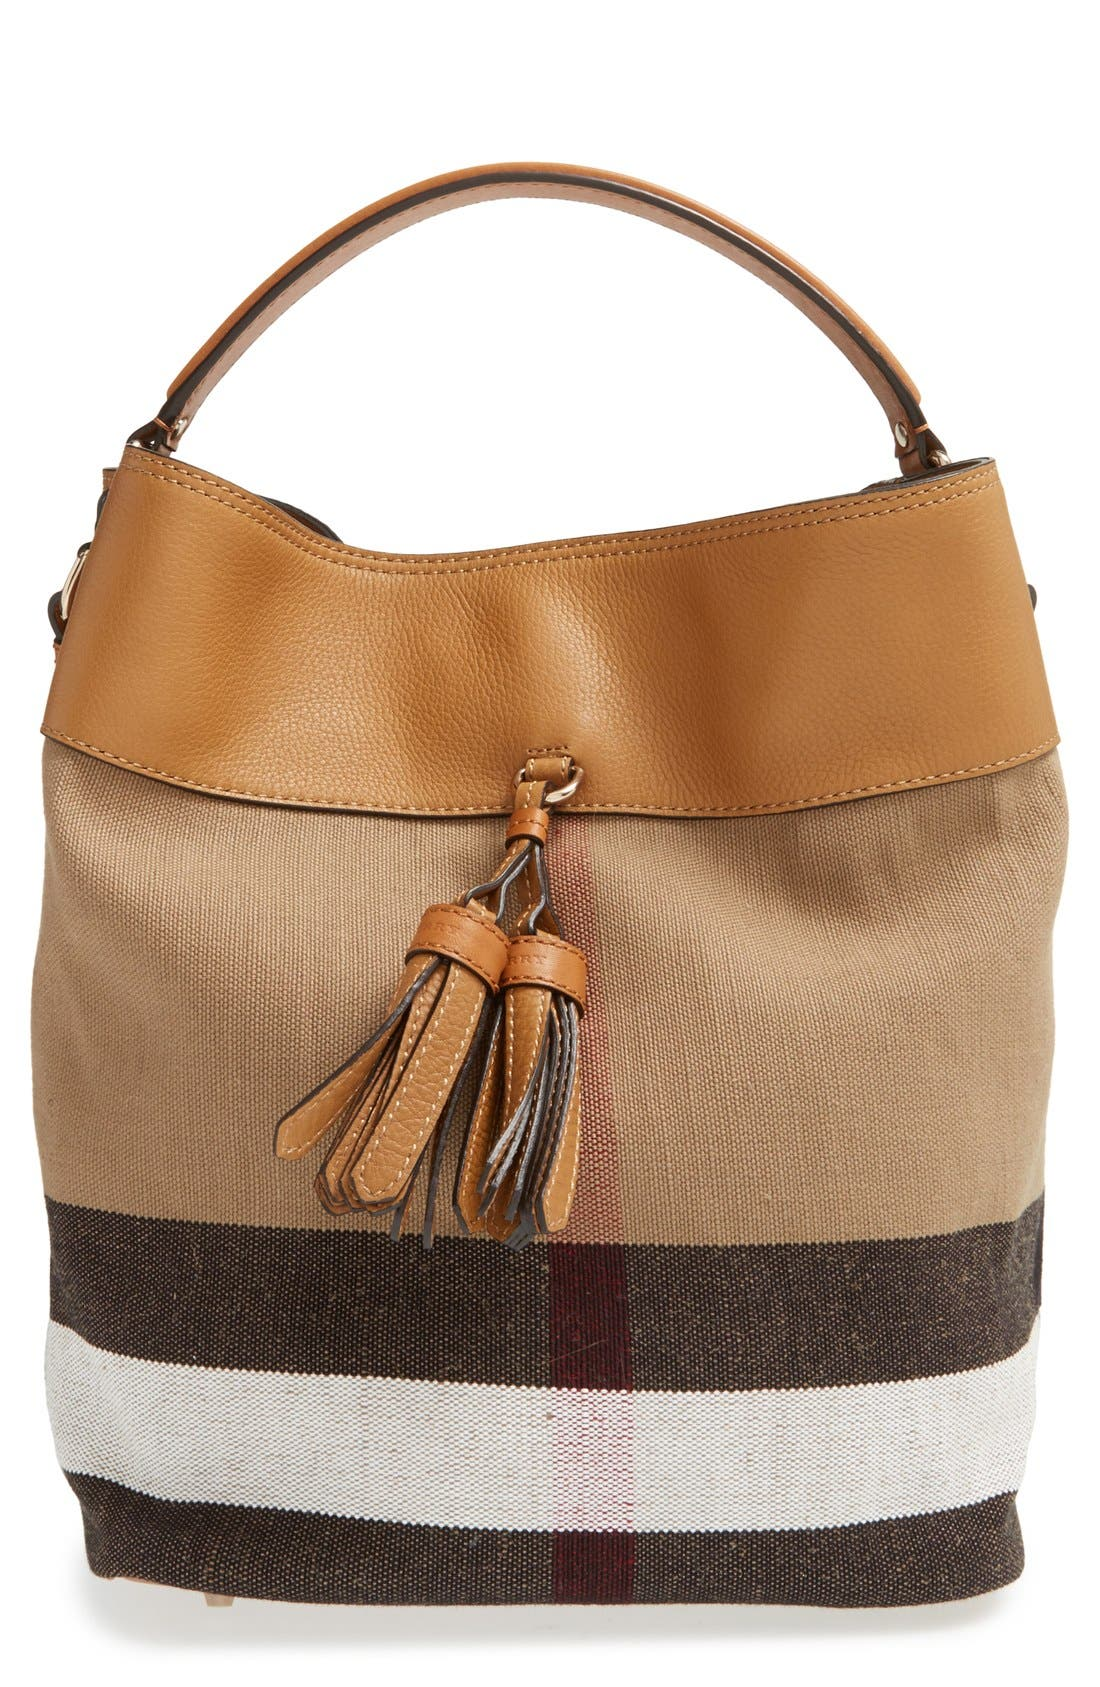 Main Image - Burberry Medium Ashby Bucket Bag